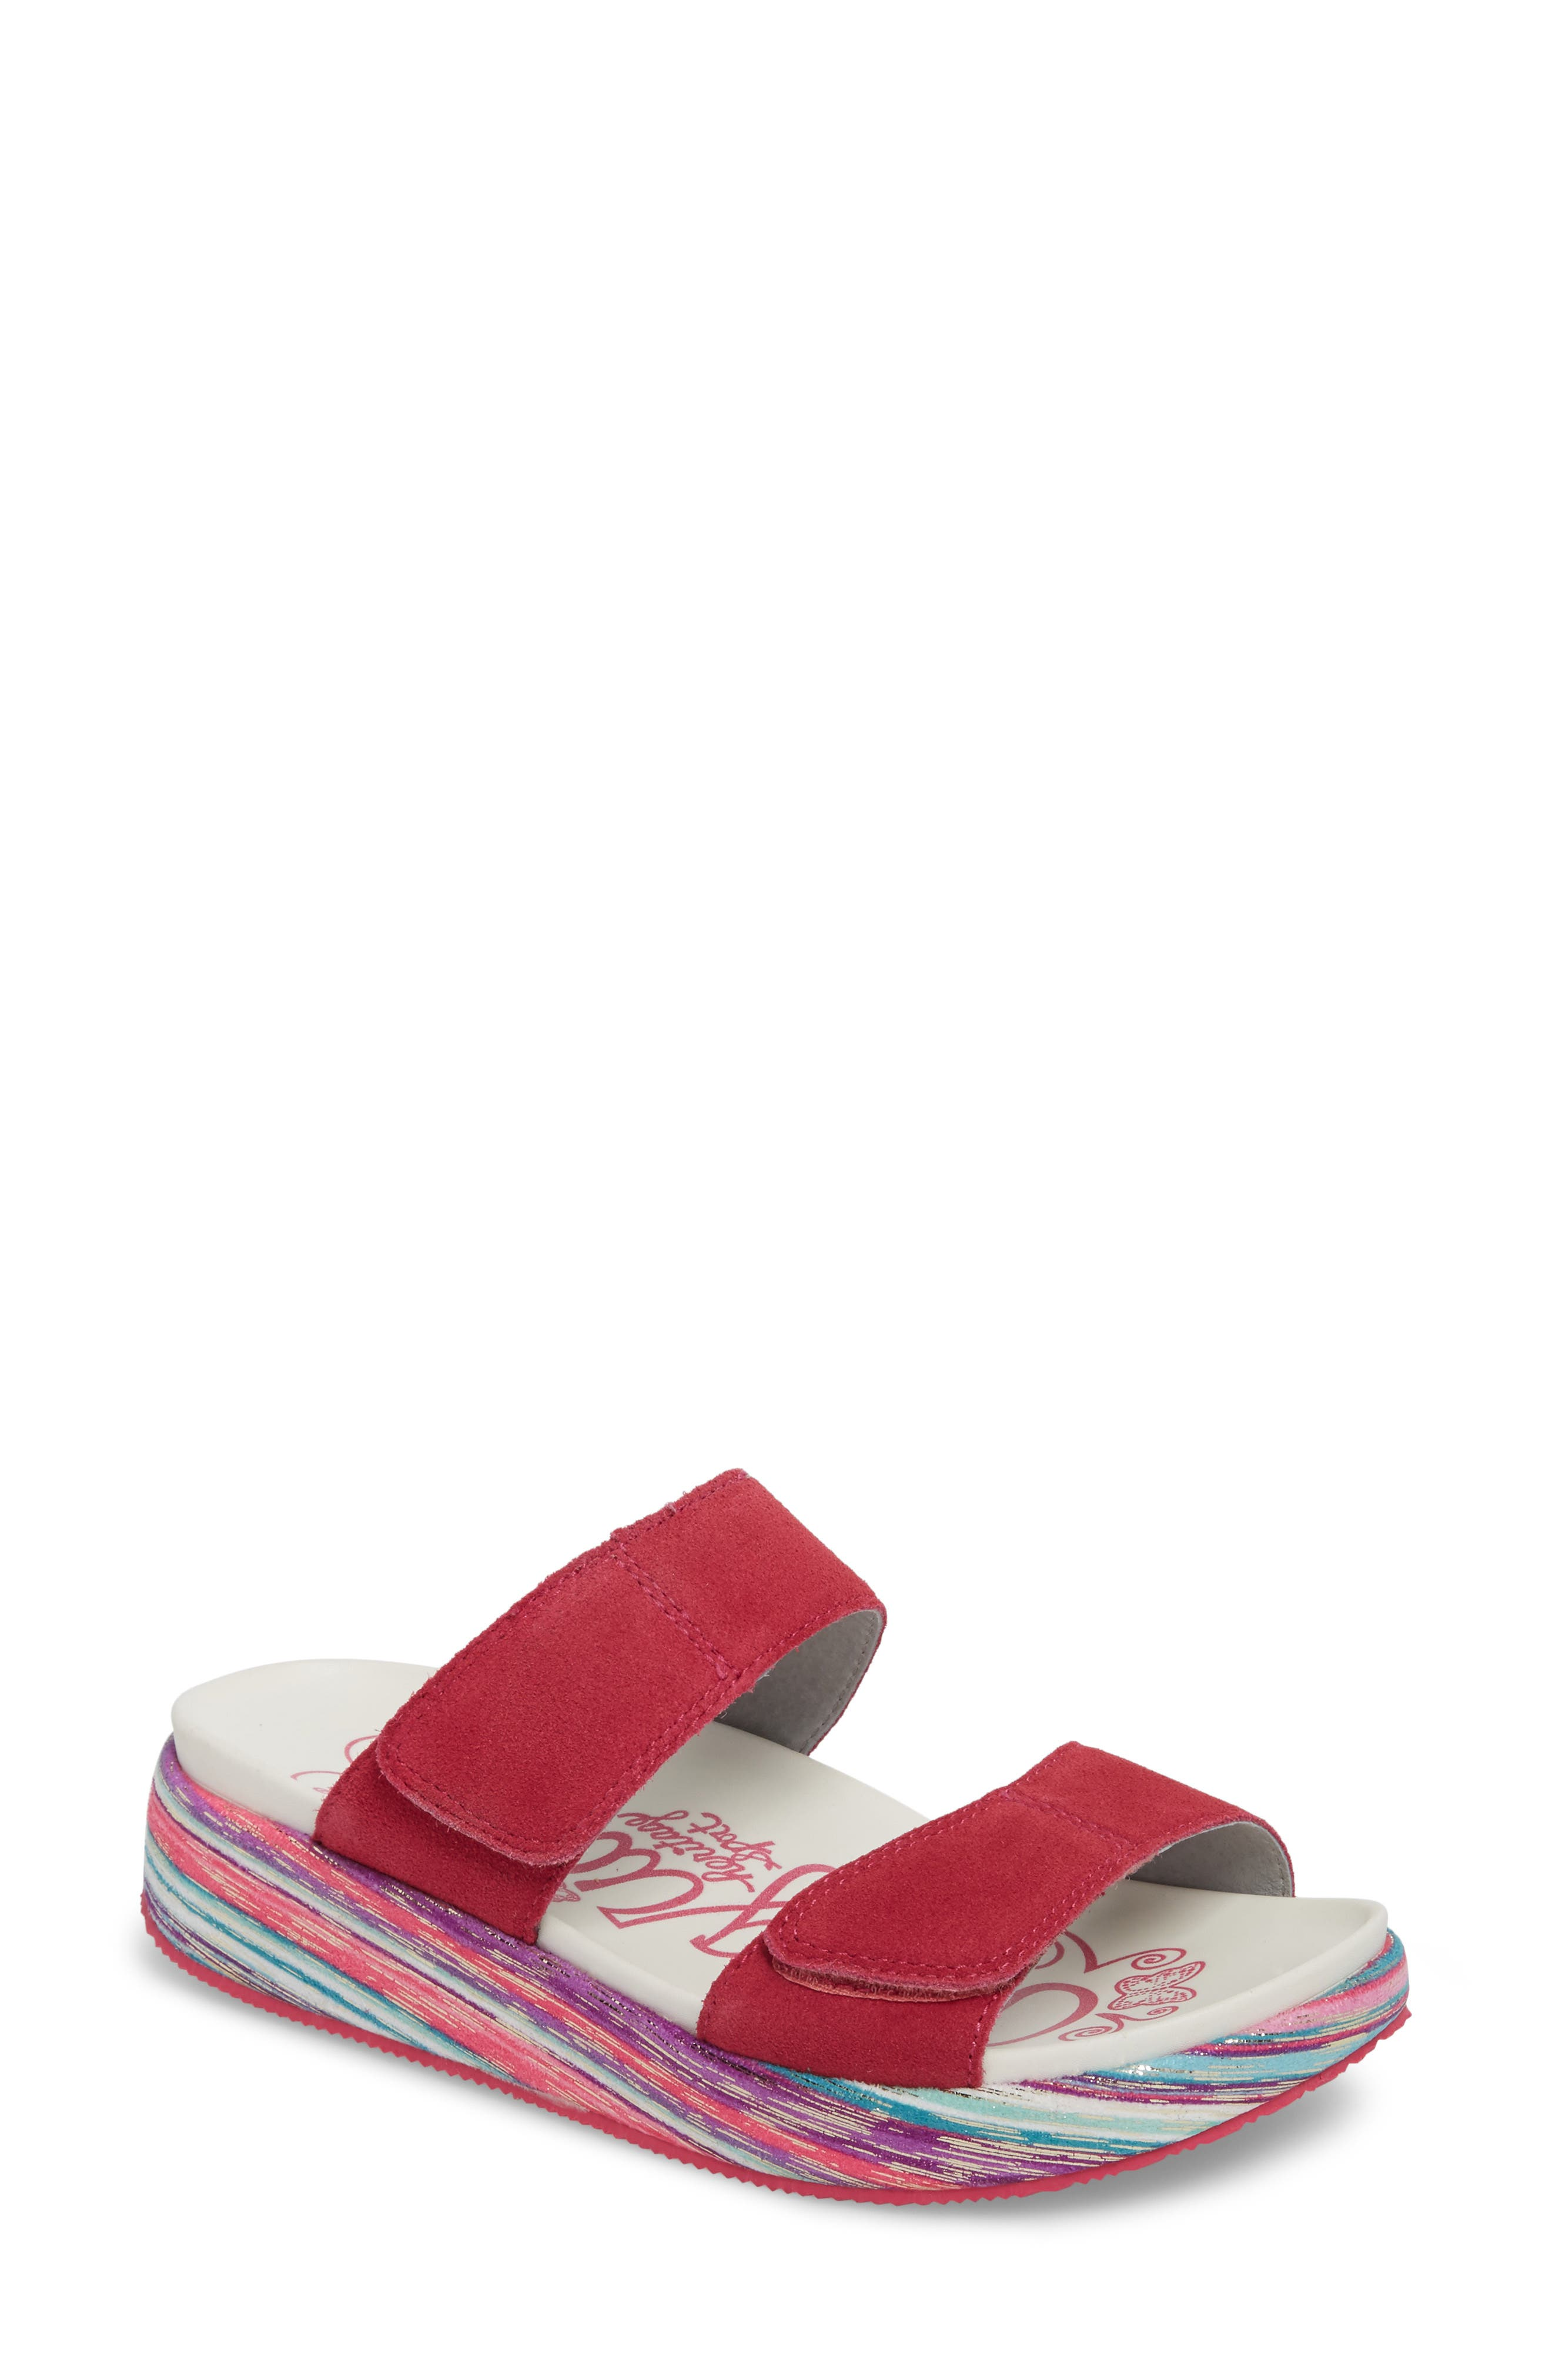 by PG Lite Mixie Slide Sandal,                             Main thumbnail 1, color,                             Fuchsia Party Leather